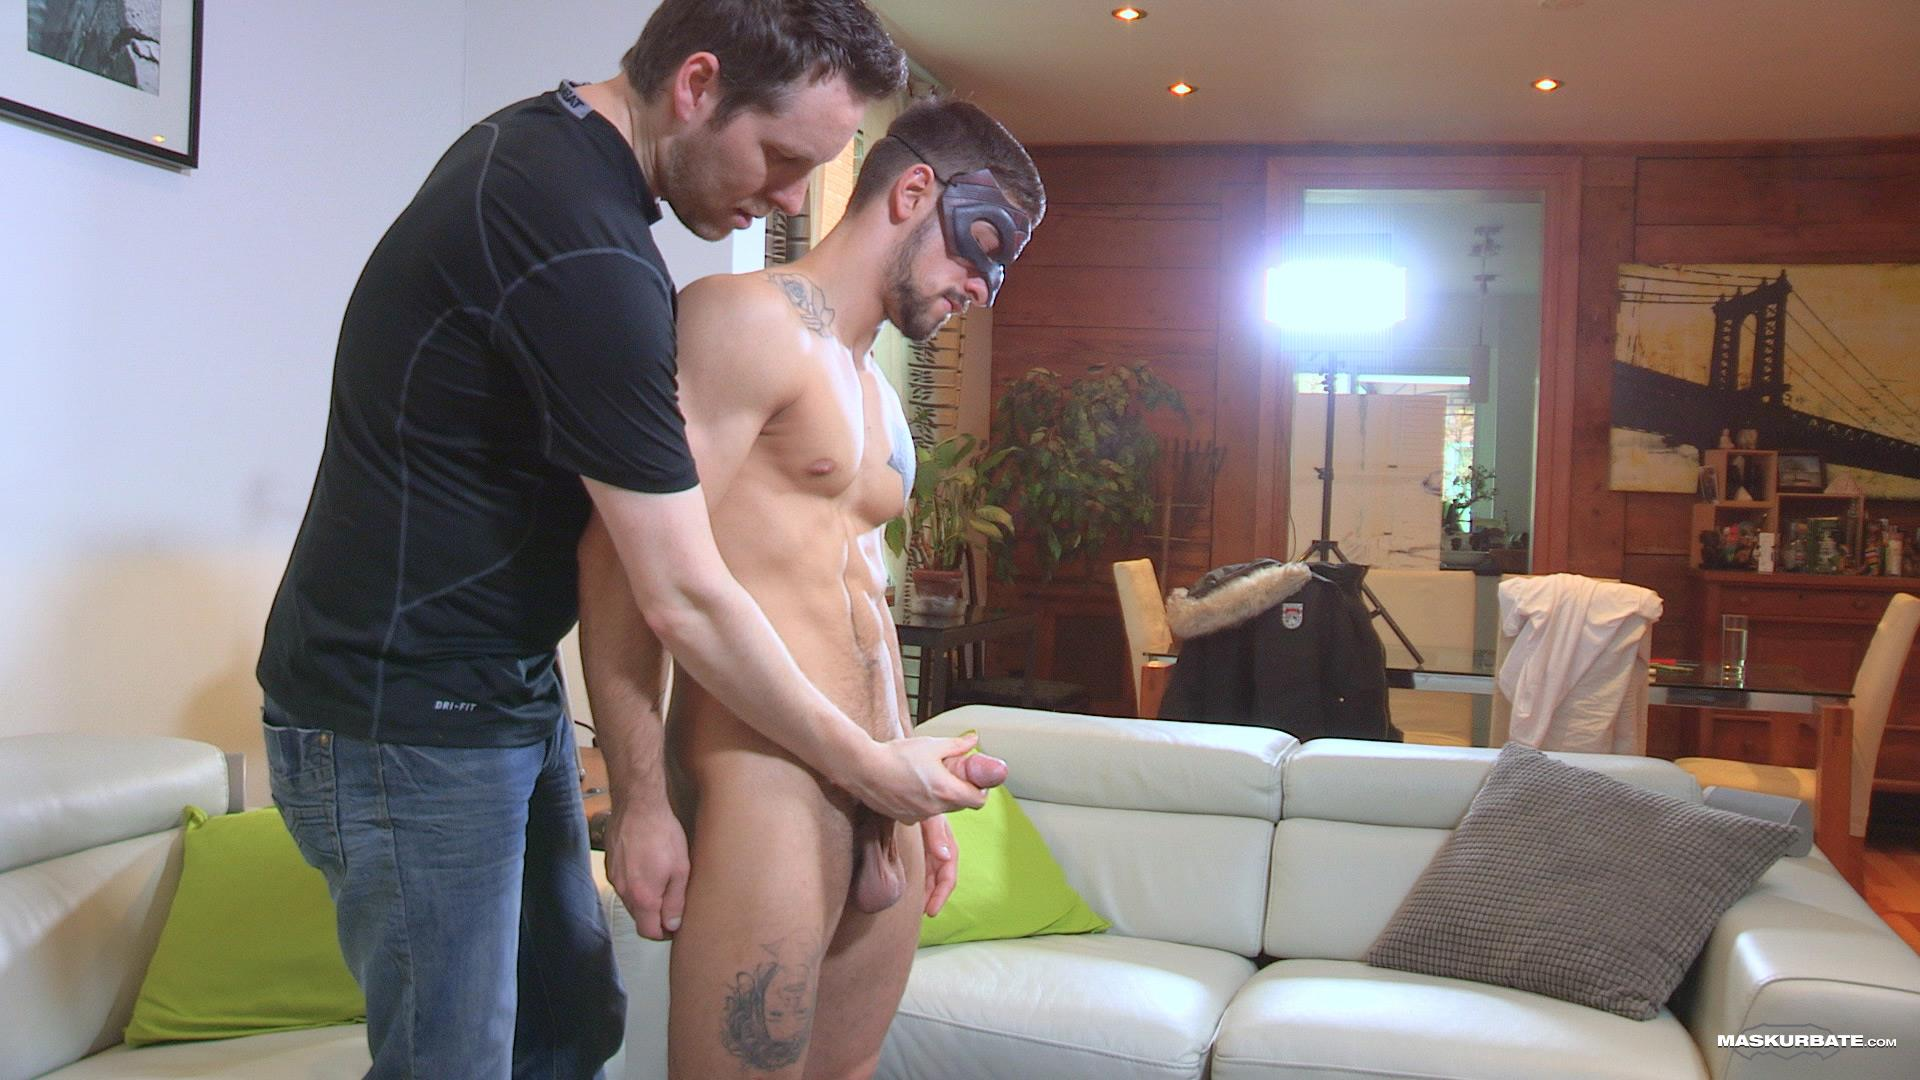 Maskurbate-Carl-Straight-Muscle-Jock-With-A-Big-Cock-Amateur-Gay-Porn-06 Straight Muscle Hunk Gets His First Blow Job From Another Guy